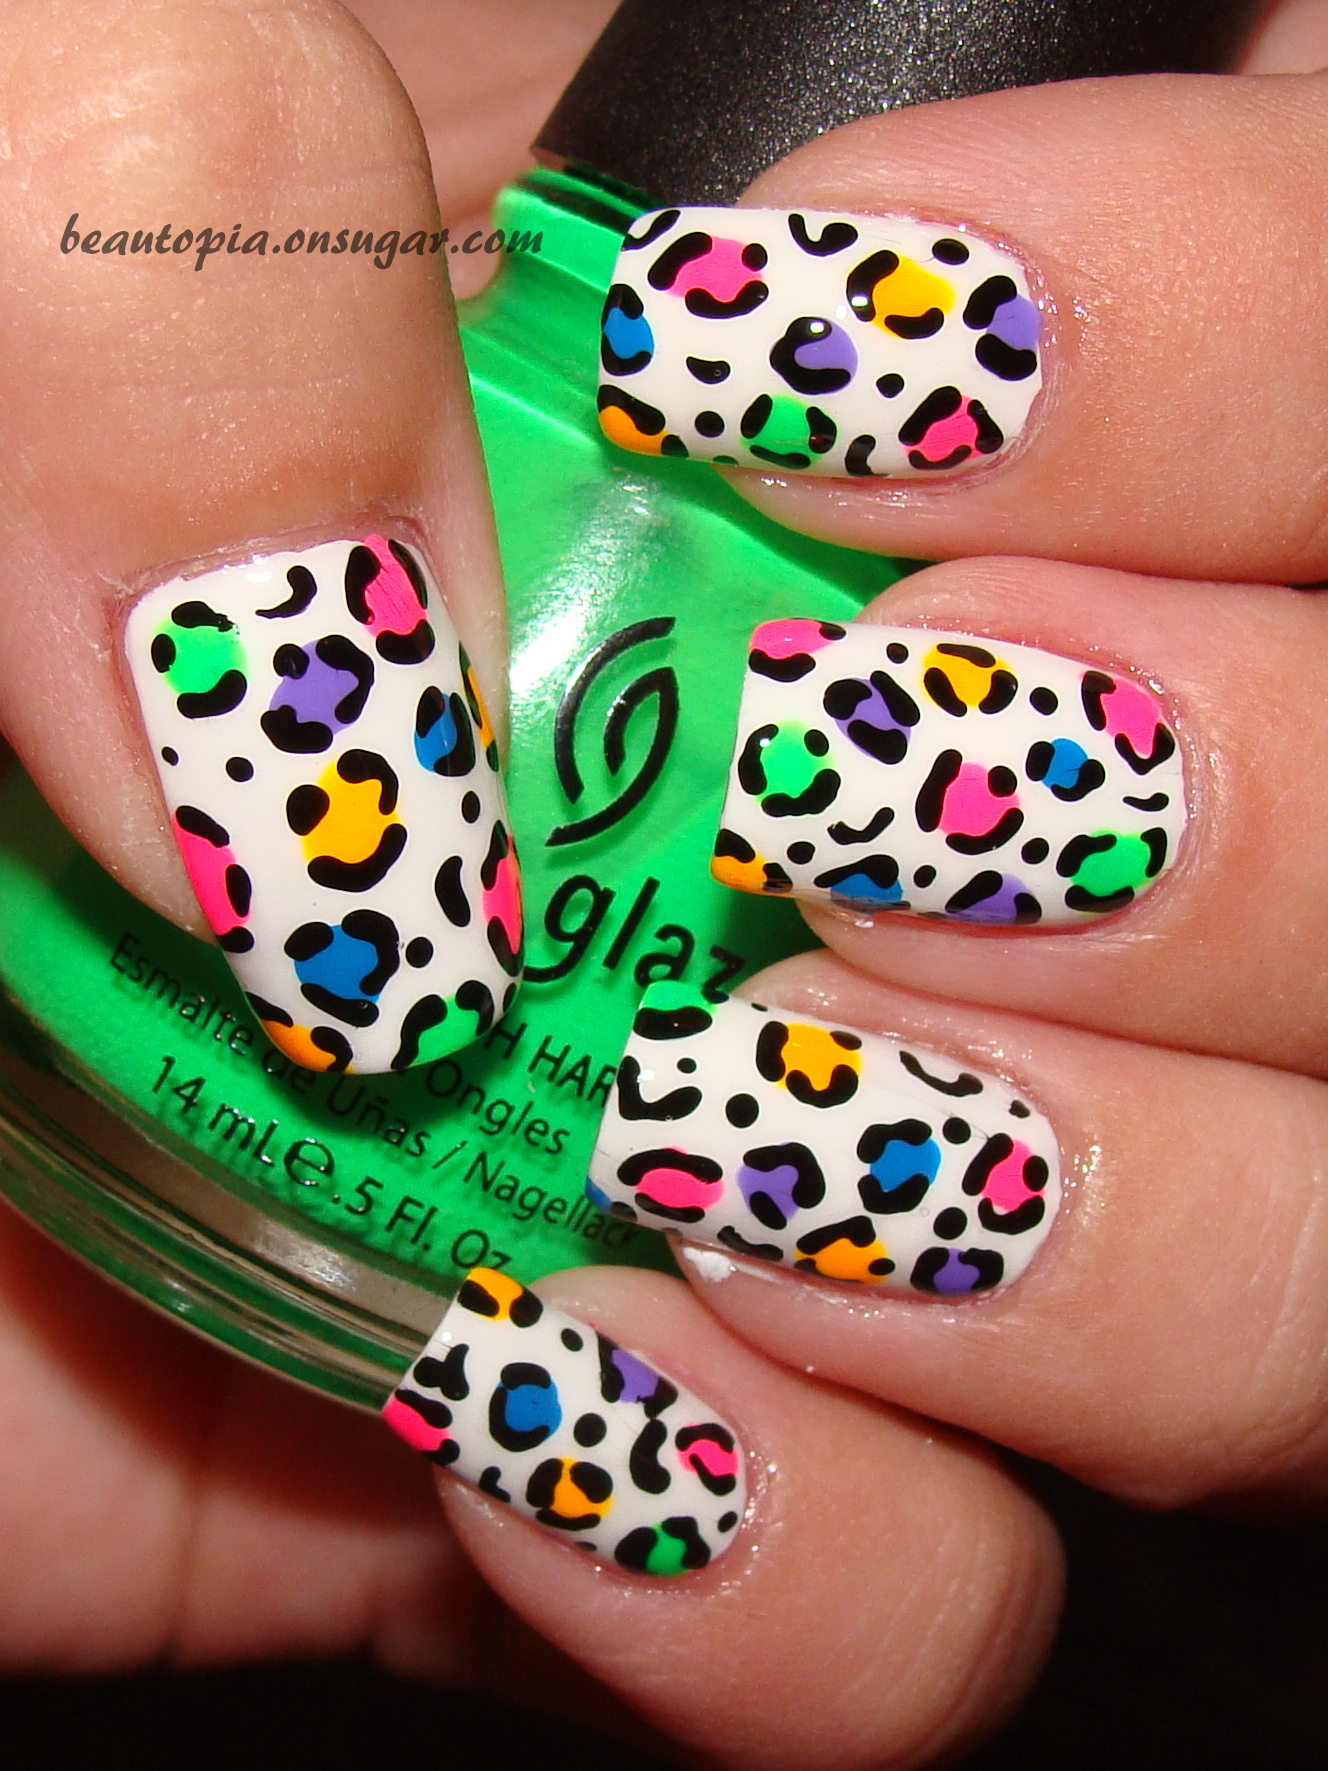 New and exciting innovative nail art products - One Quirky Blog